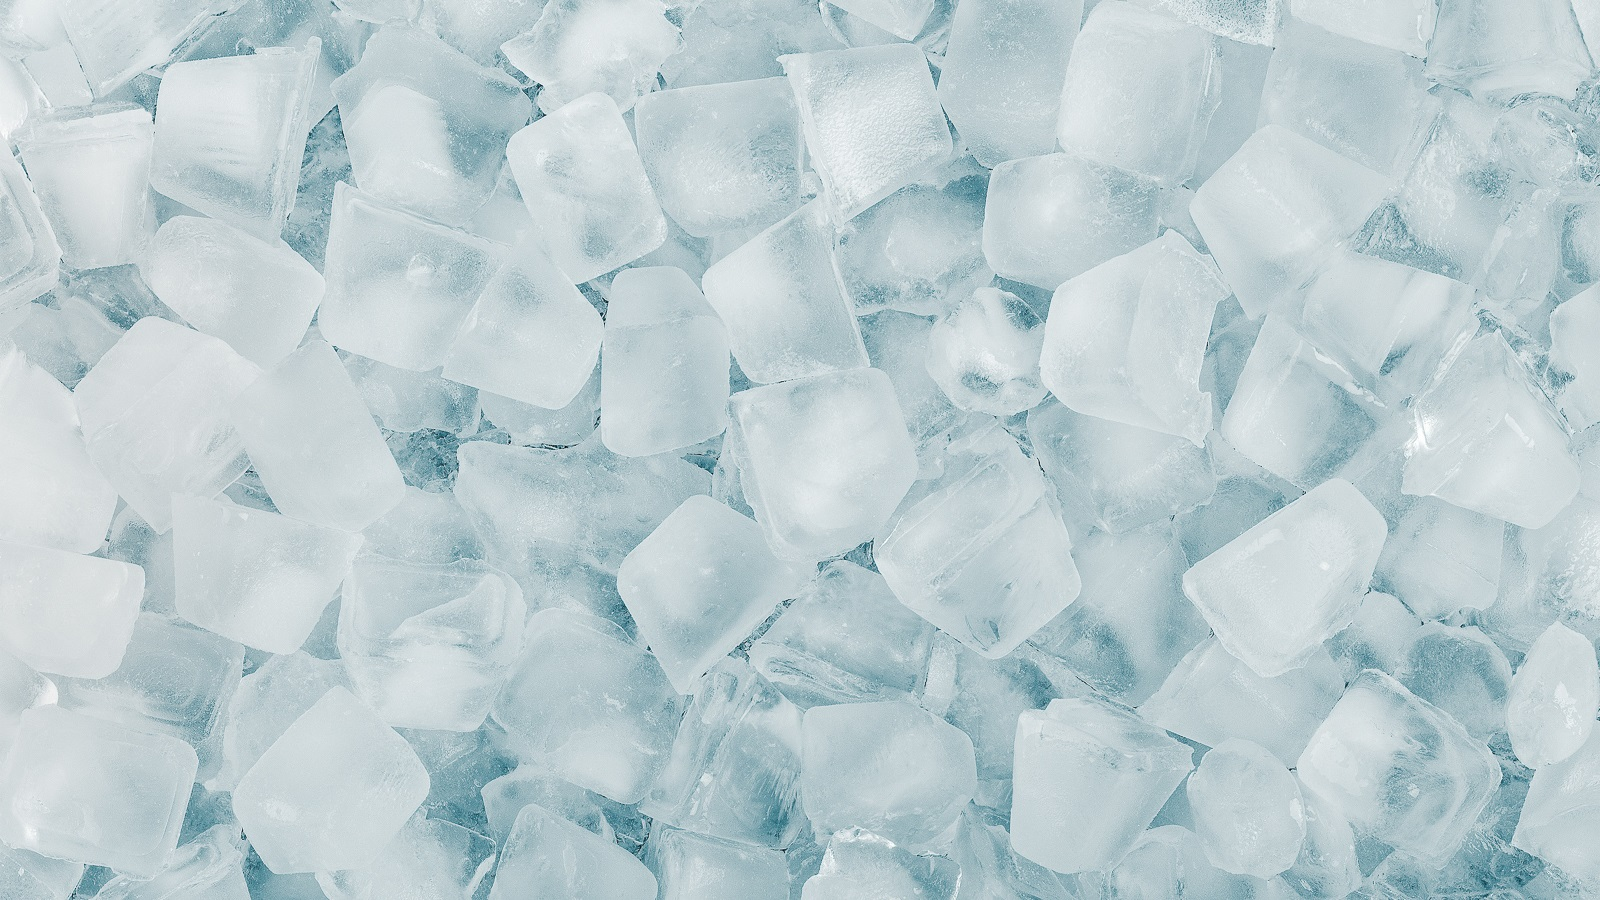 Ice cubes. (Image by Igor Bukhlin / Shutterstock.)